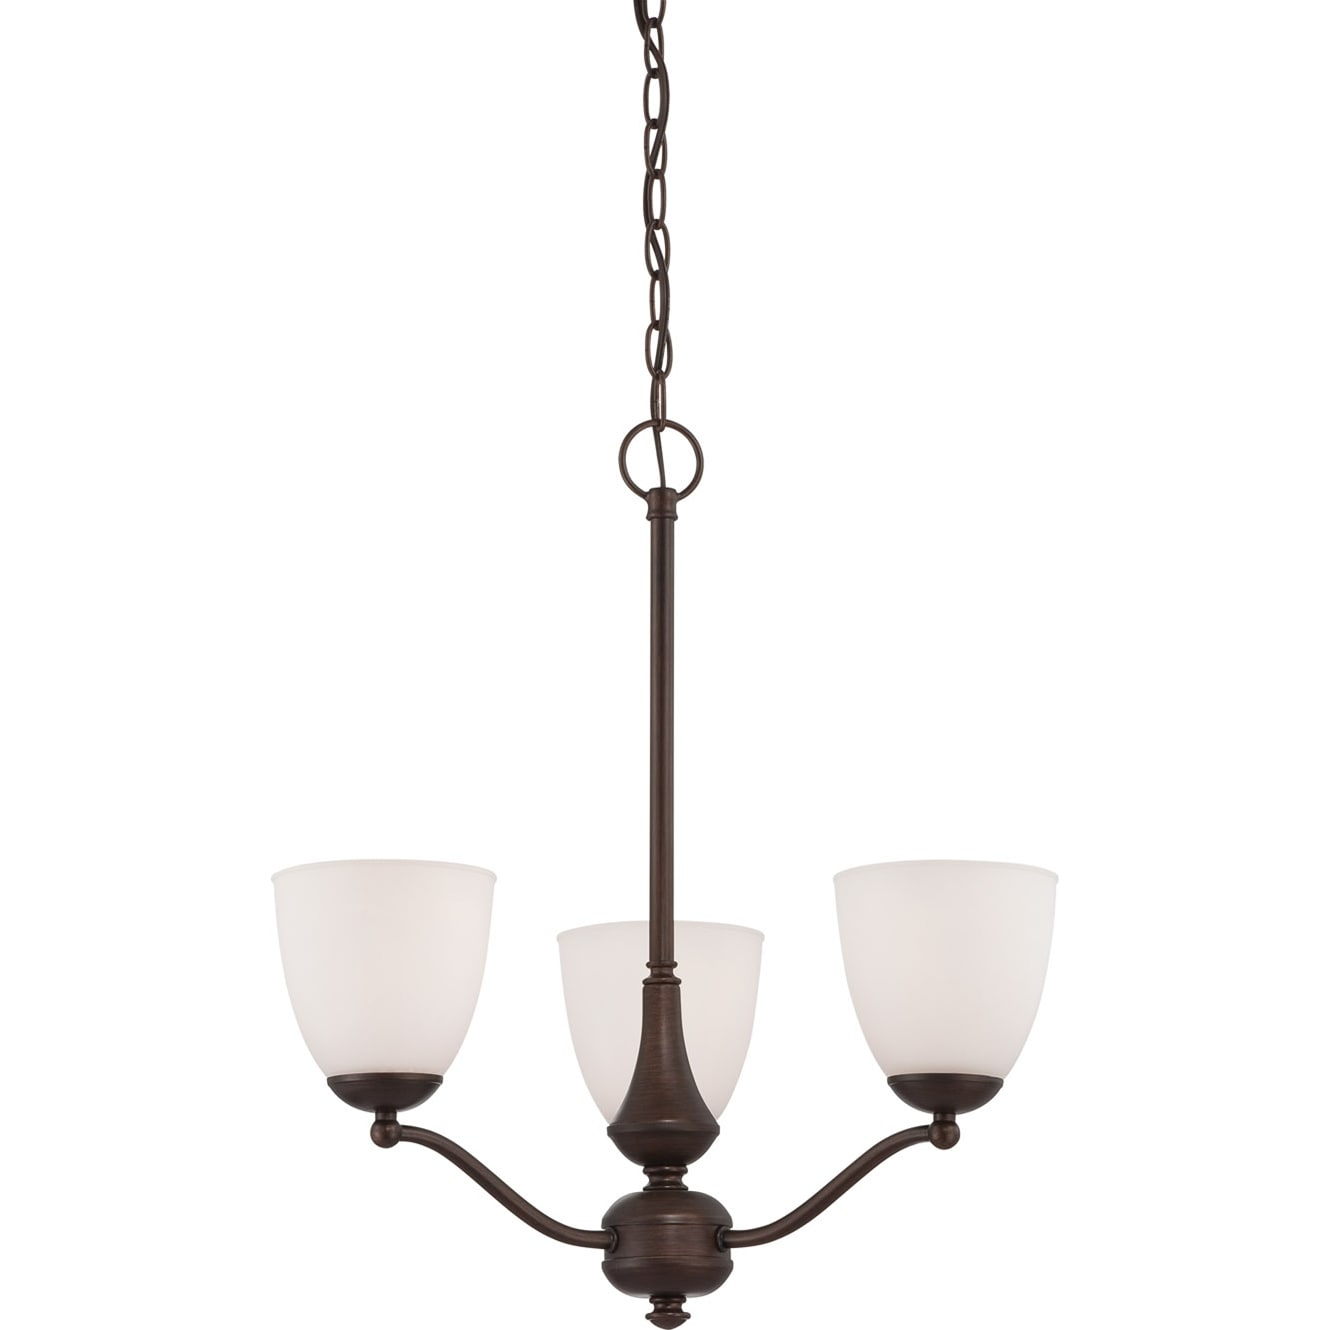 Nuvo Patton Three-Light 13-Watt Prairie Bronze Fluorescent Chandelier